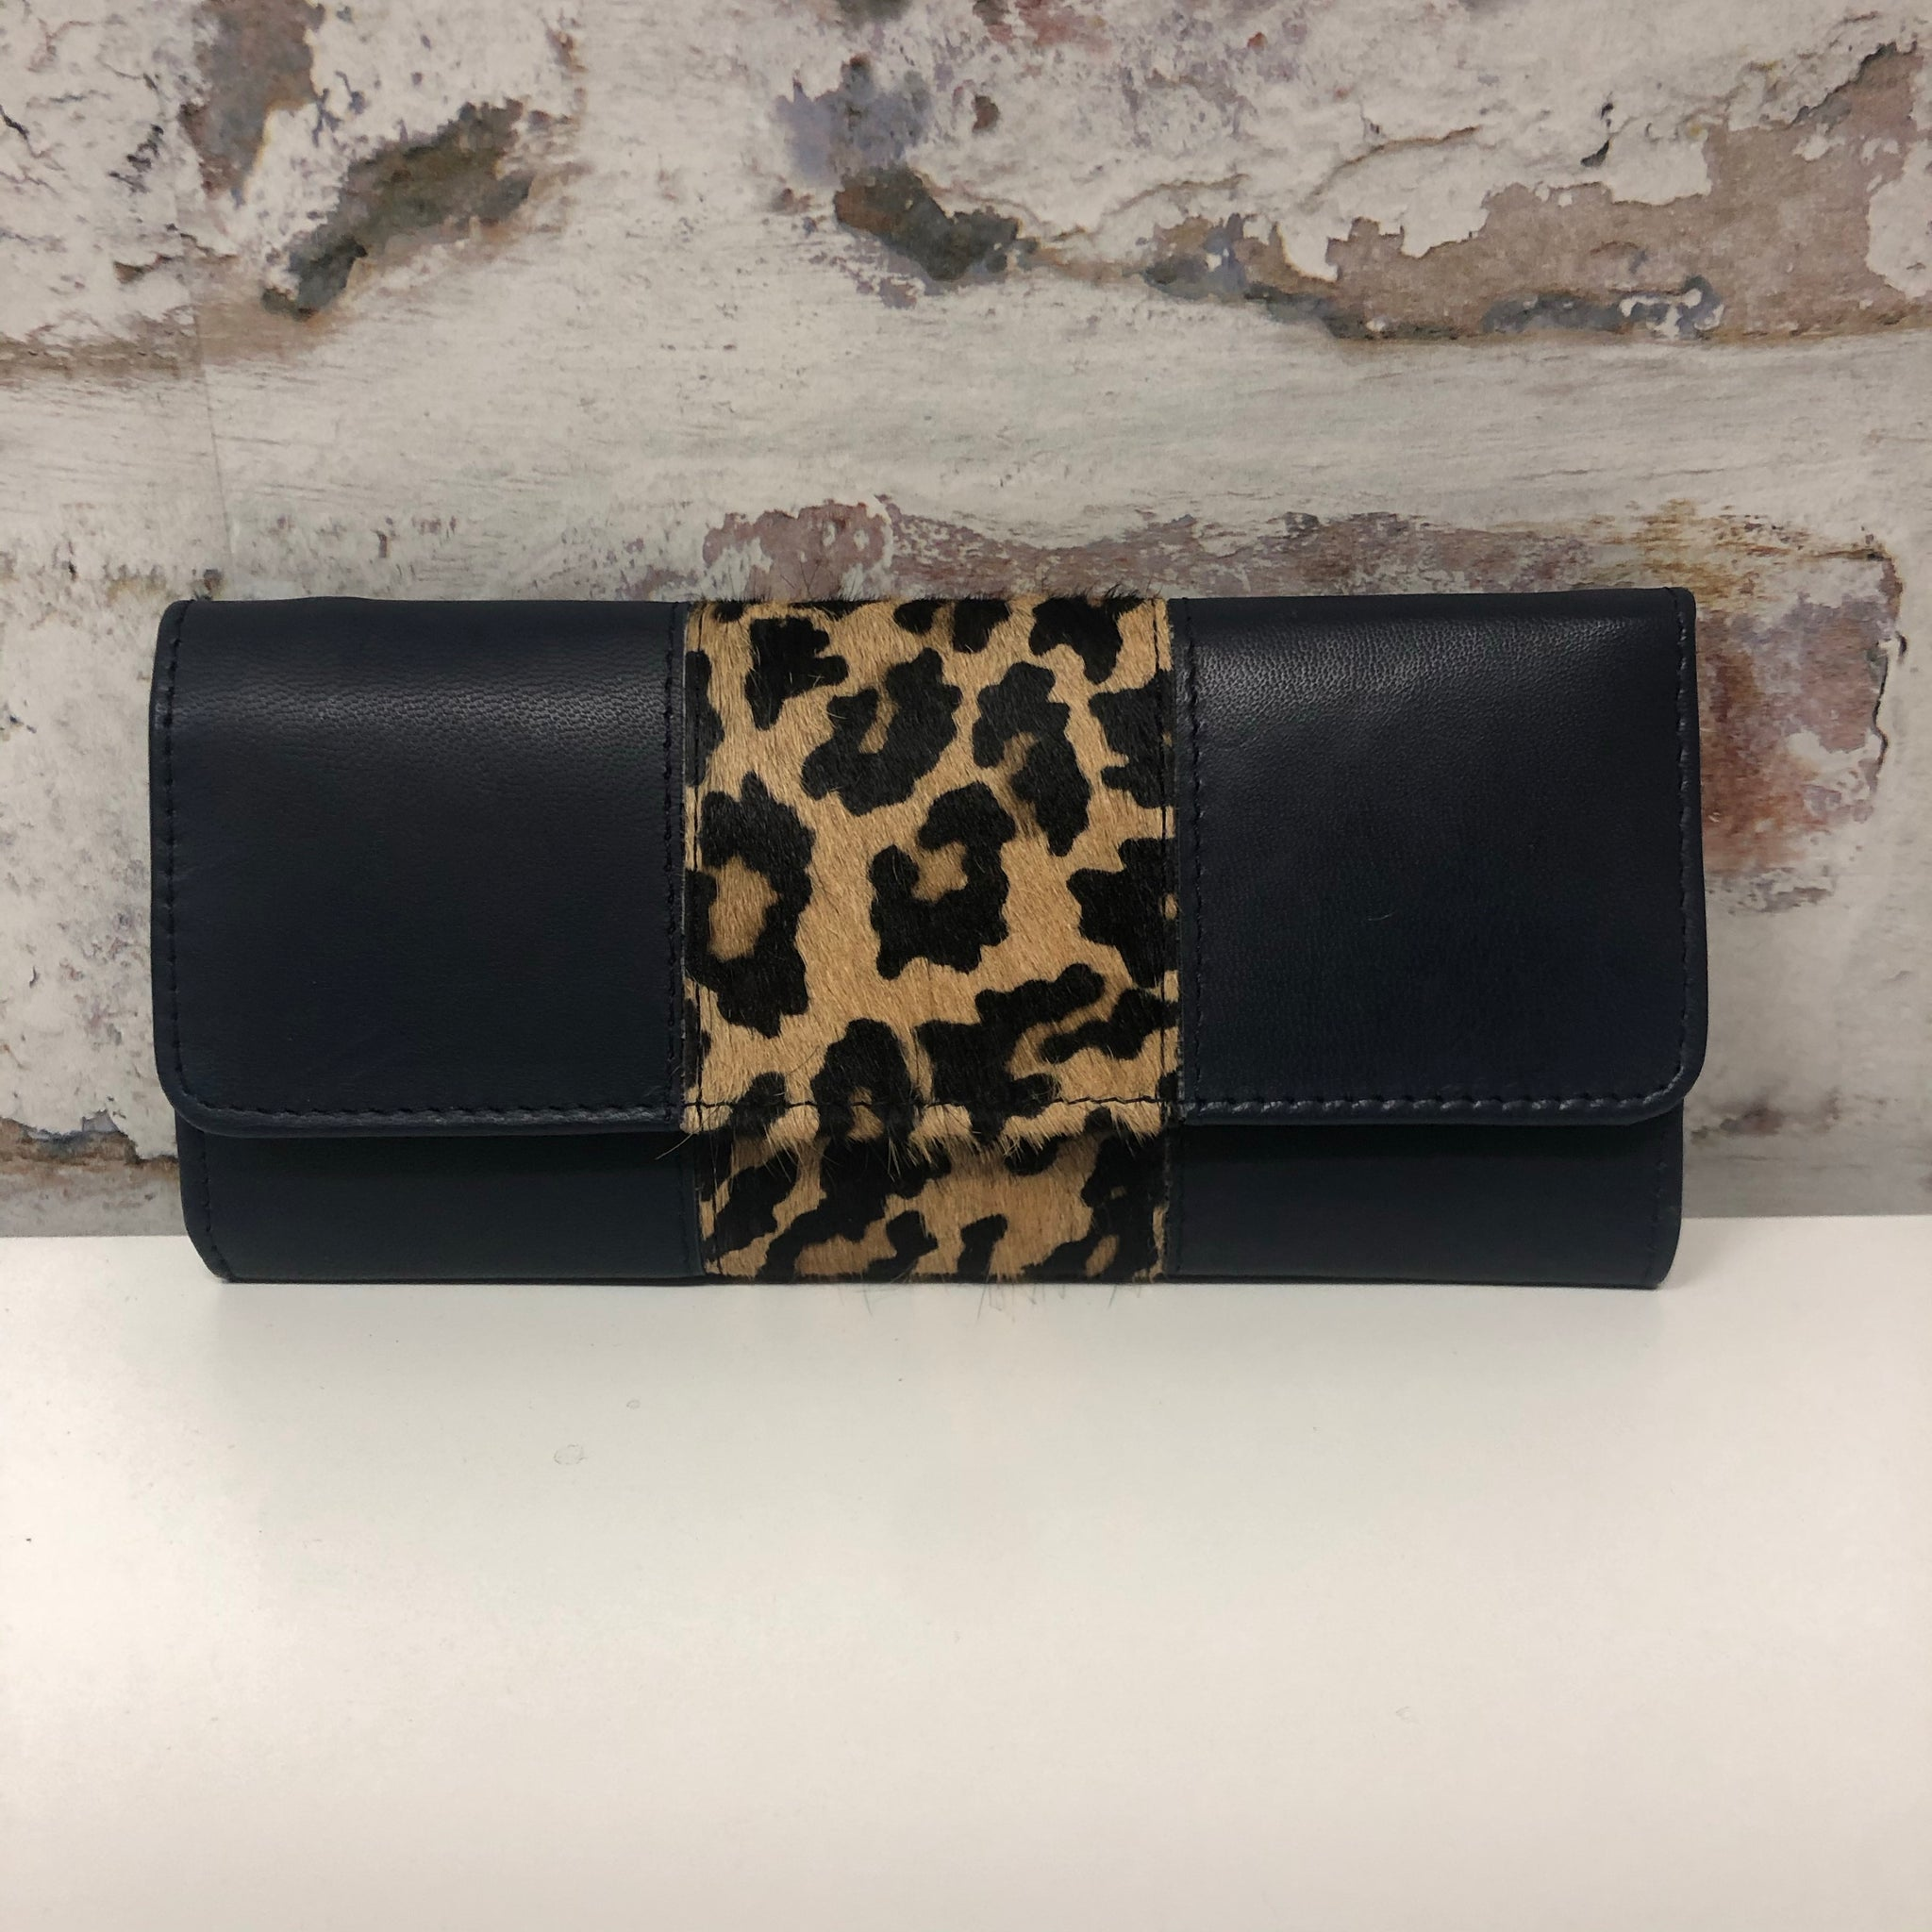 Bria Leather Wallet- Navy Leopard